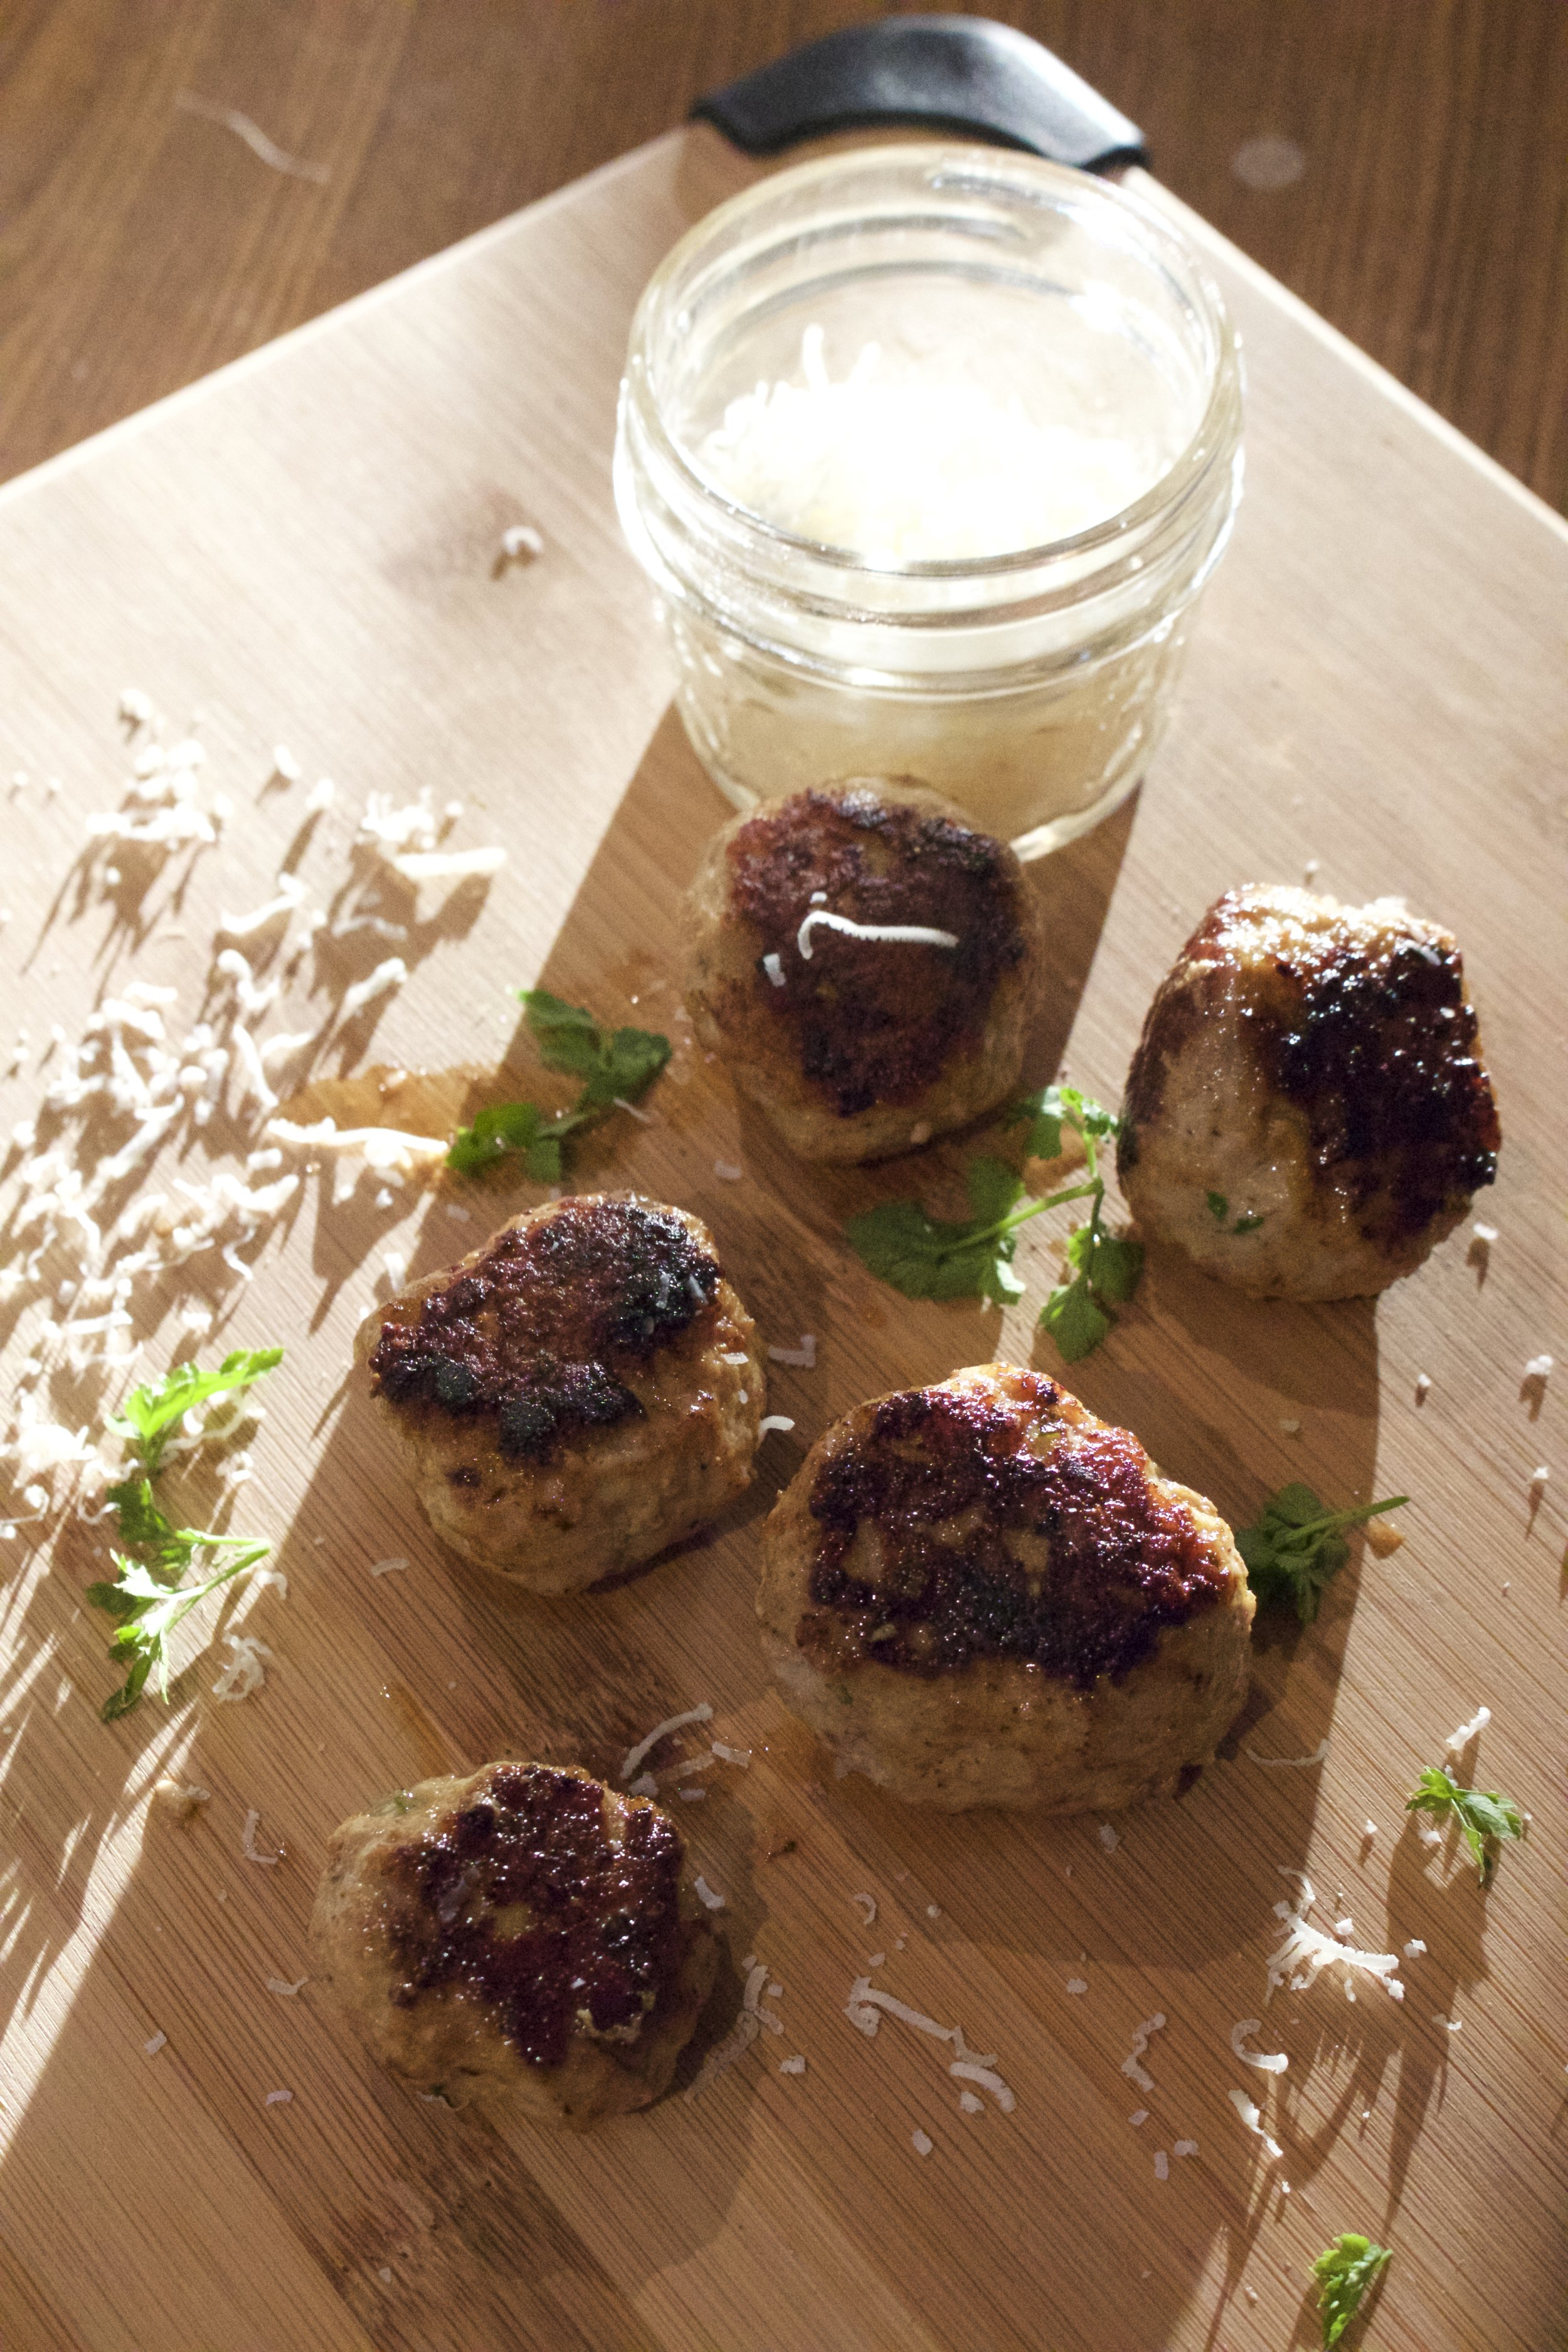 Even delicious on their own as an appetizer